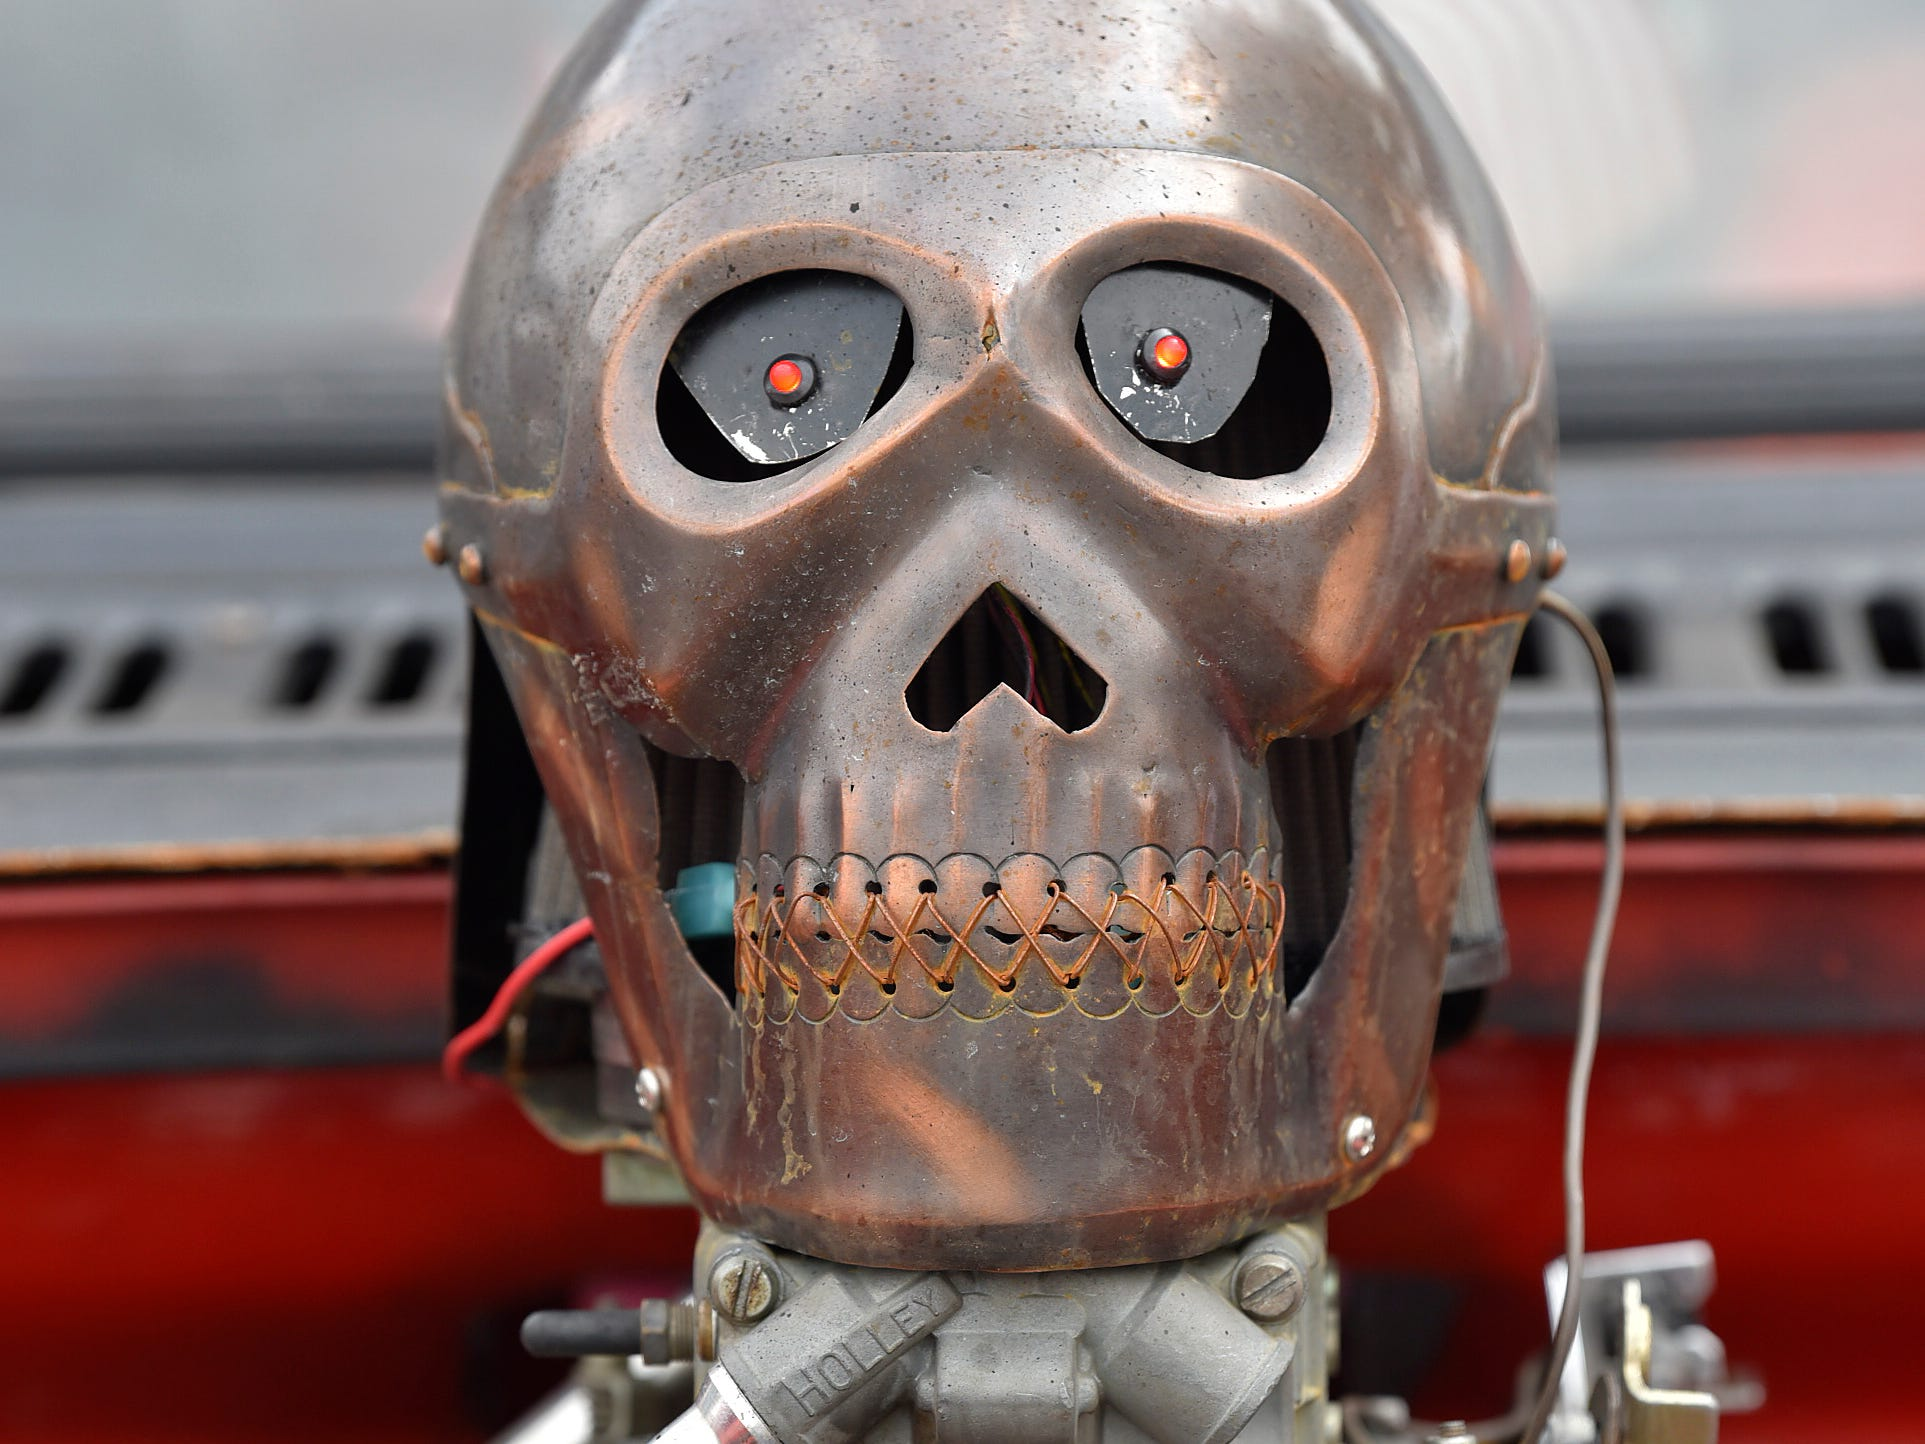 A skull air cleaner sits on top of a 327-cubic-inch Chevy motor on a 1965 D-100 Dodge Fleetside pickup truck owned by Dan Holdren, 61, of Oregon, Ohio.